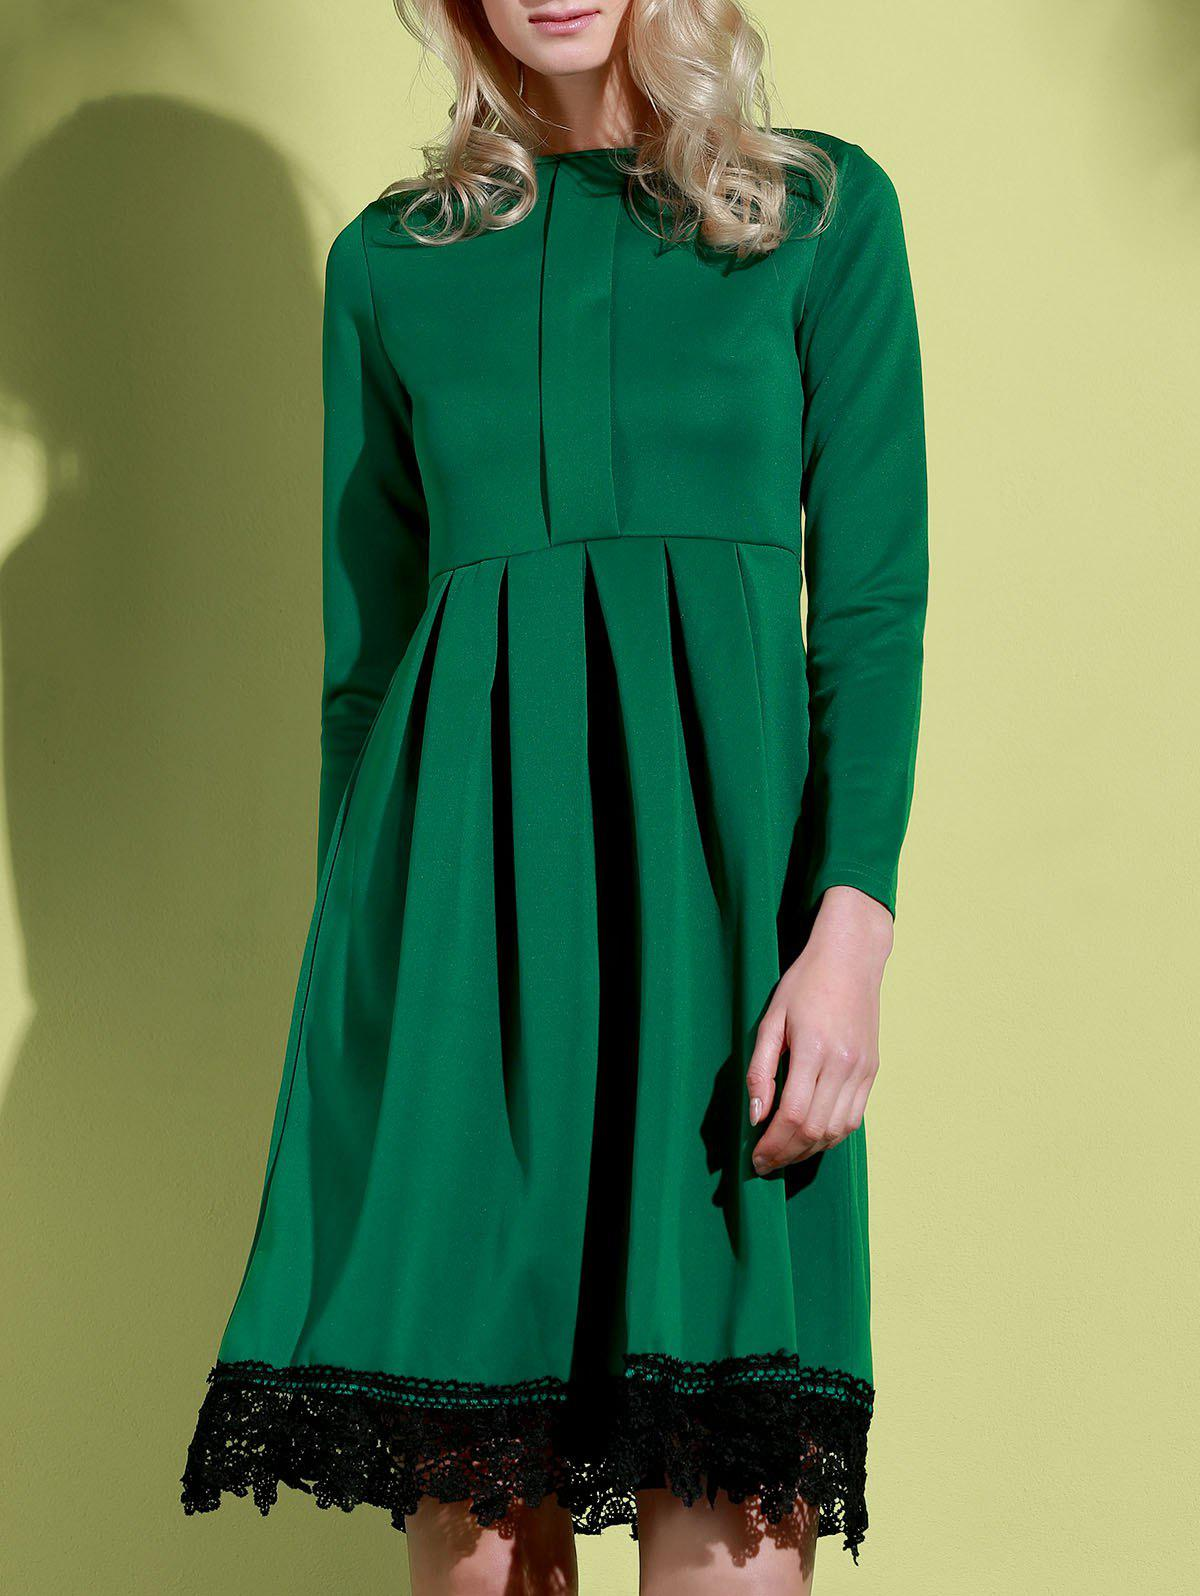 Attractive Round Collar Lace Hem Long Sleeve Ruffled Dress For Women - GREEN S